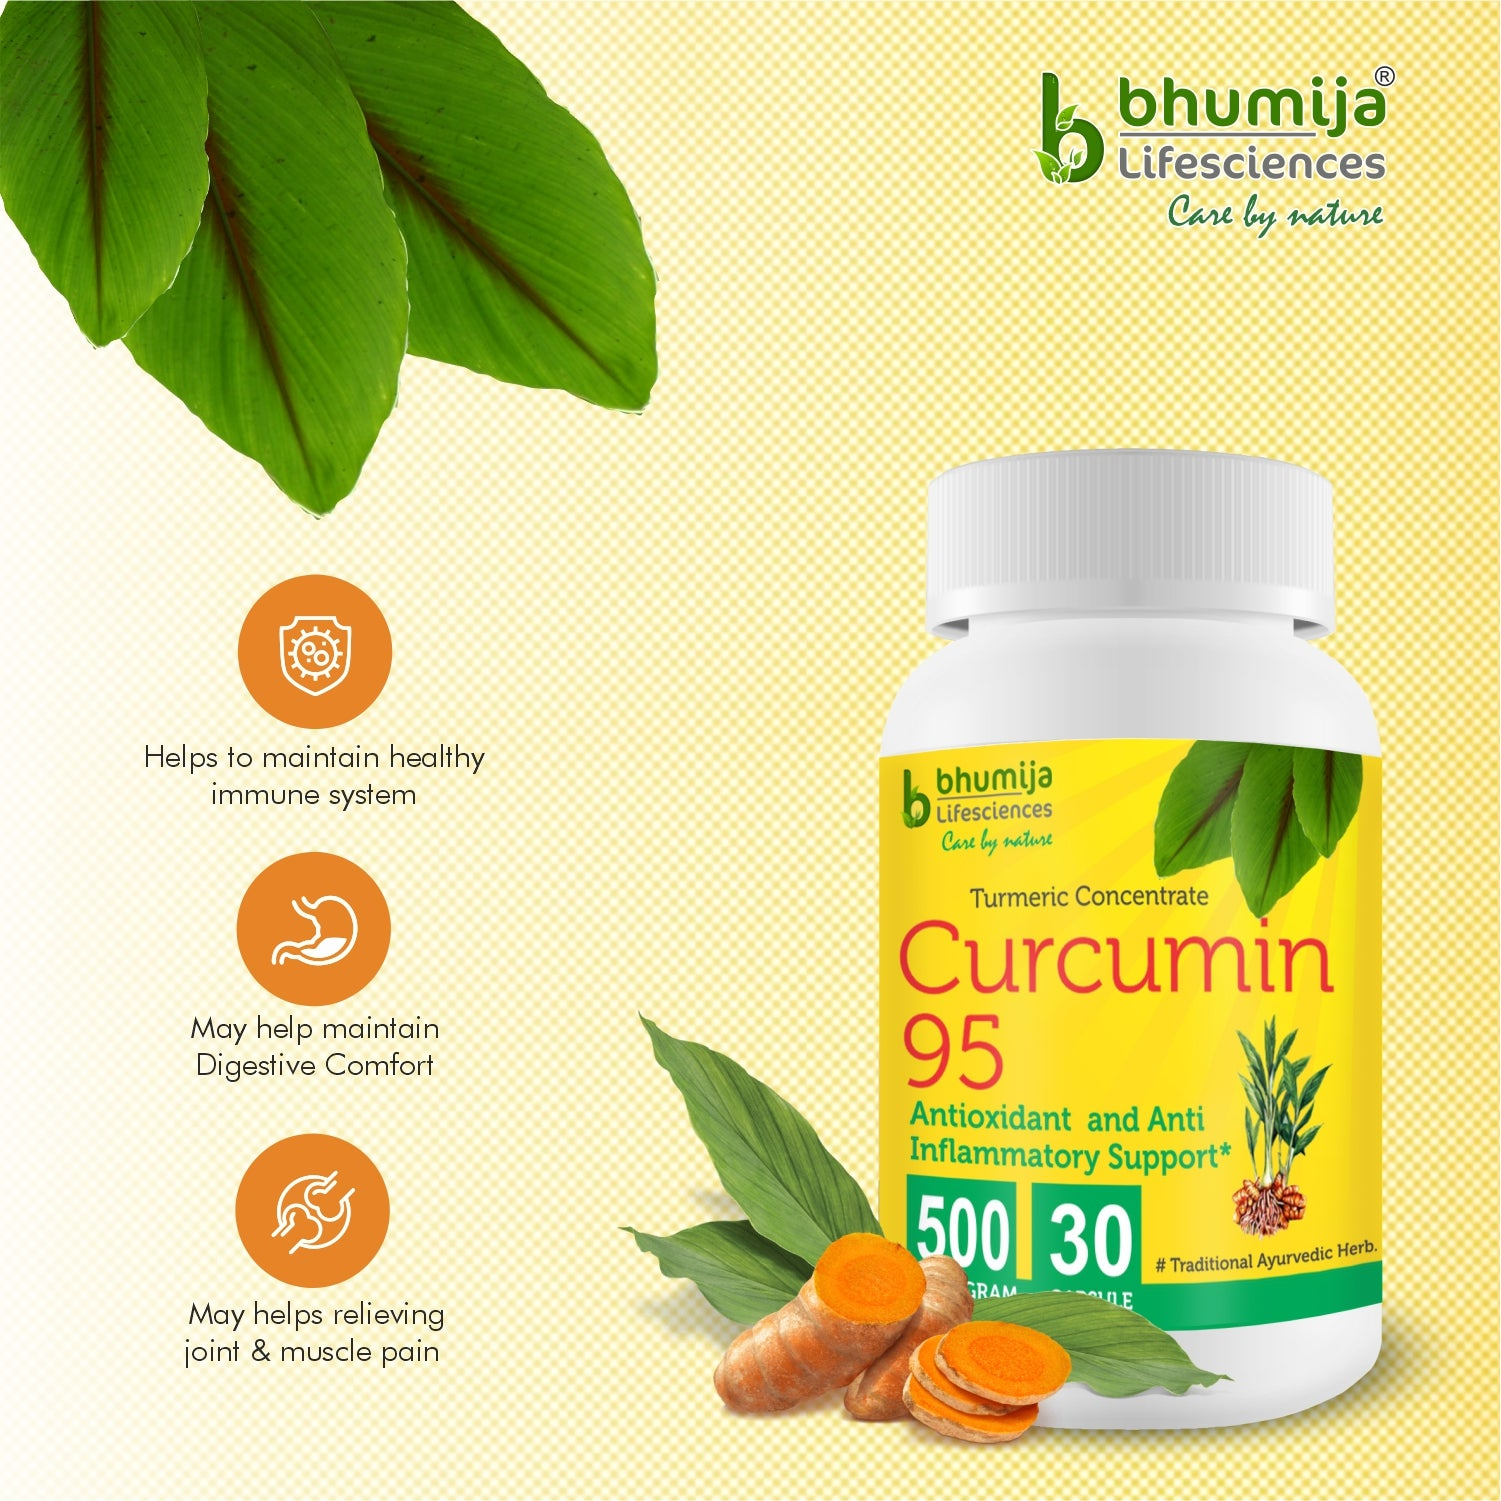 Bhumija Lifesciences Curcumin with Piper Nigram (Curcuma Longa)- 30 Capsules